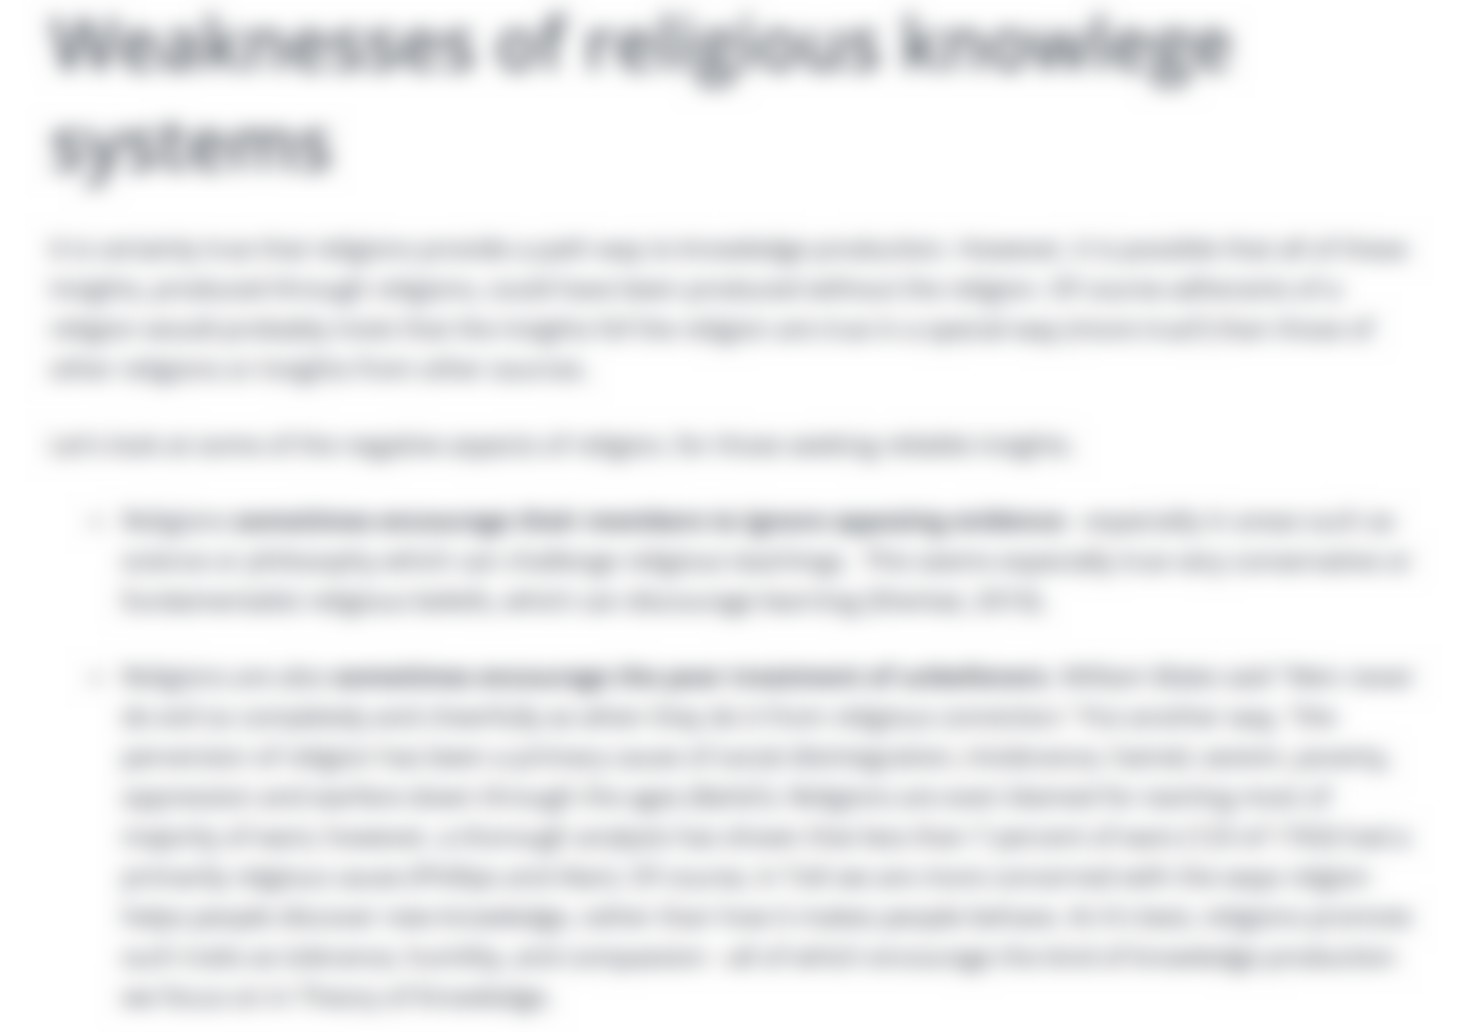 Religious Knowledge Systems Notes - ToK